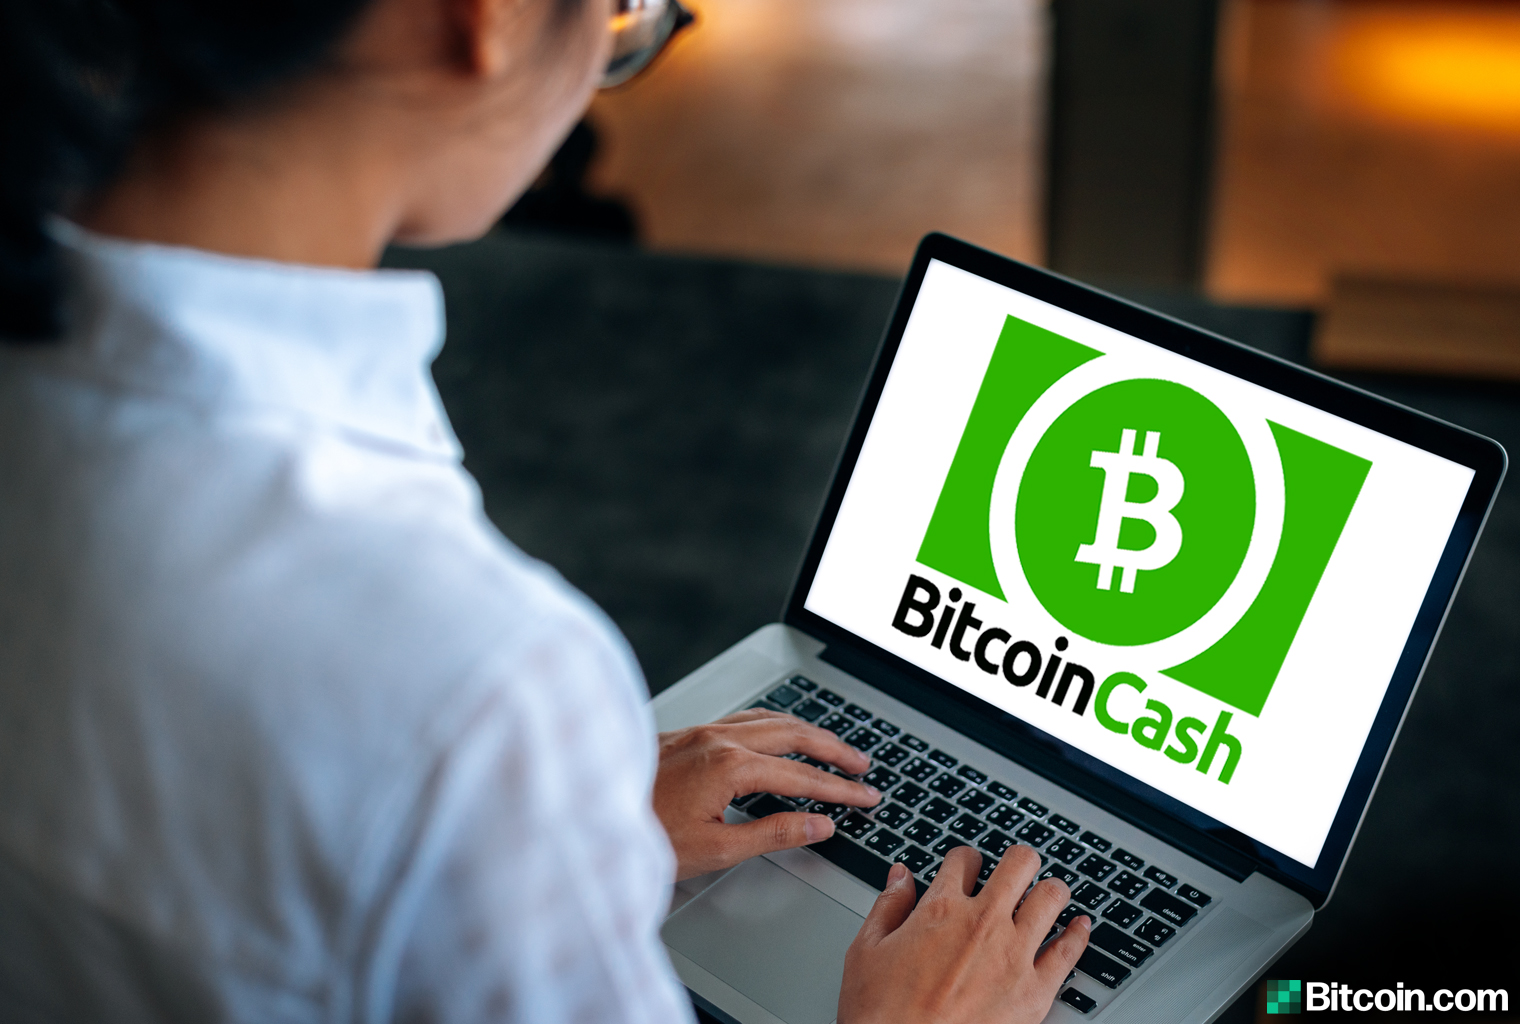 Running Bitcoin Cash: An Introduction to Operating a Full Node